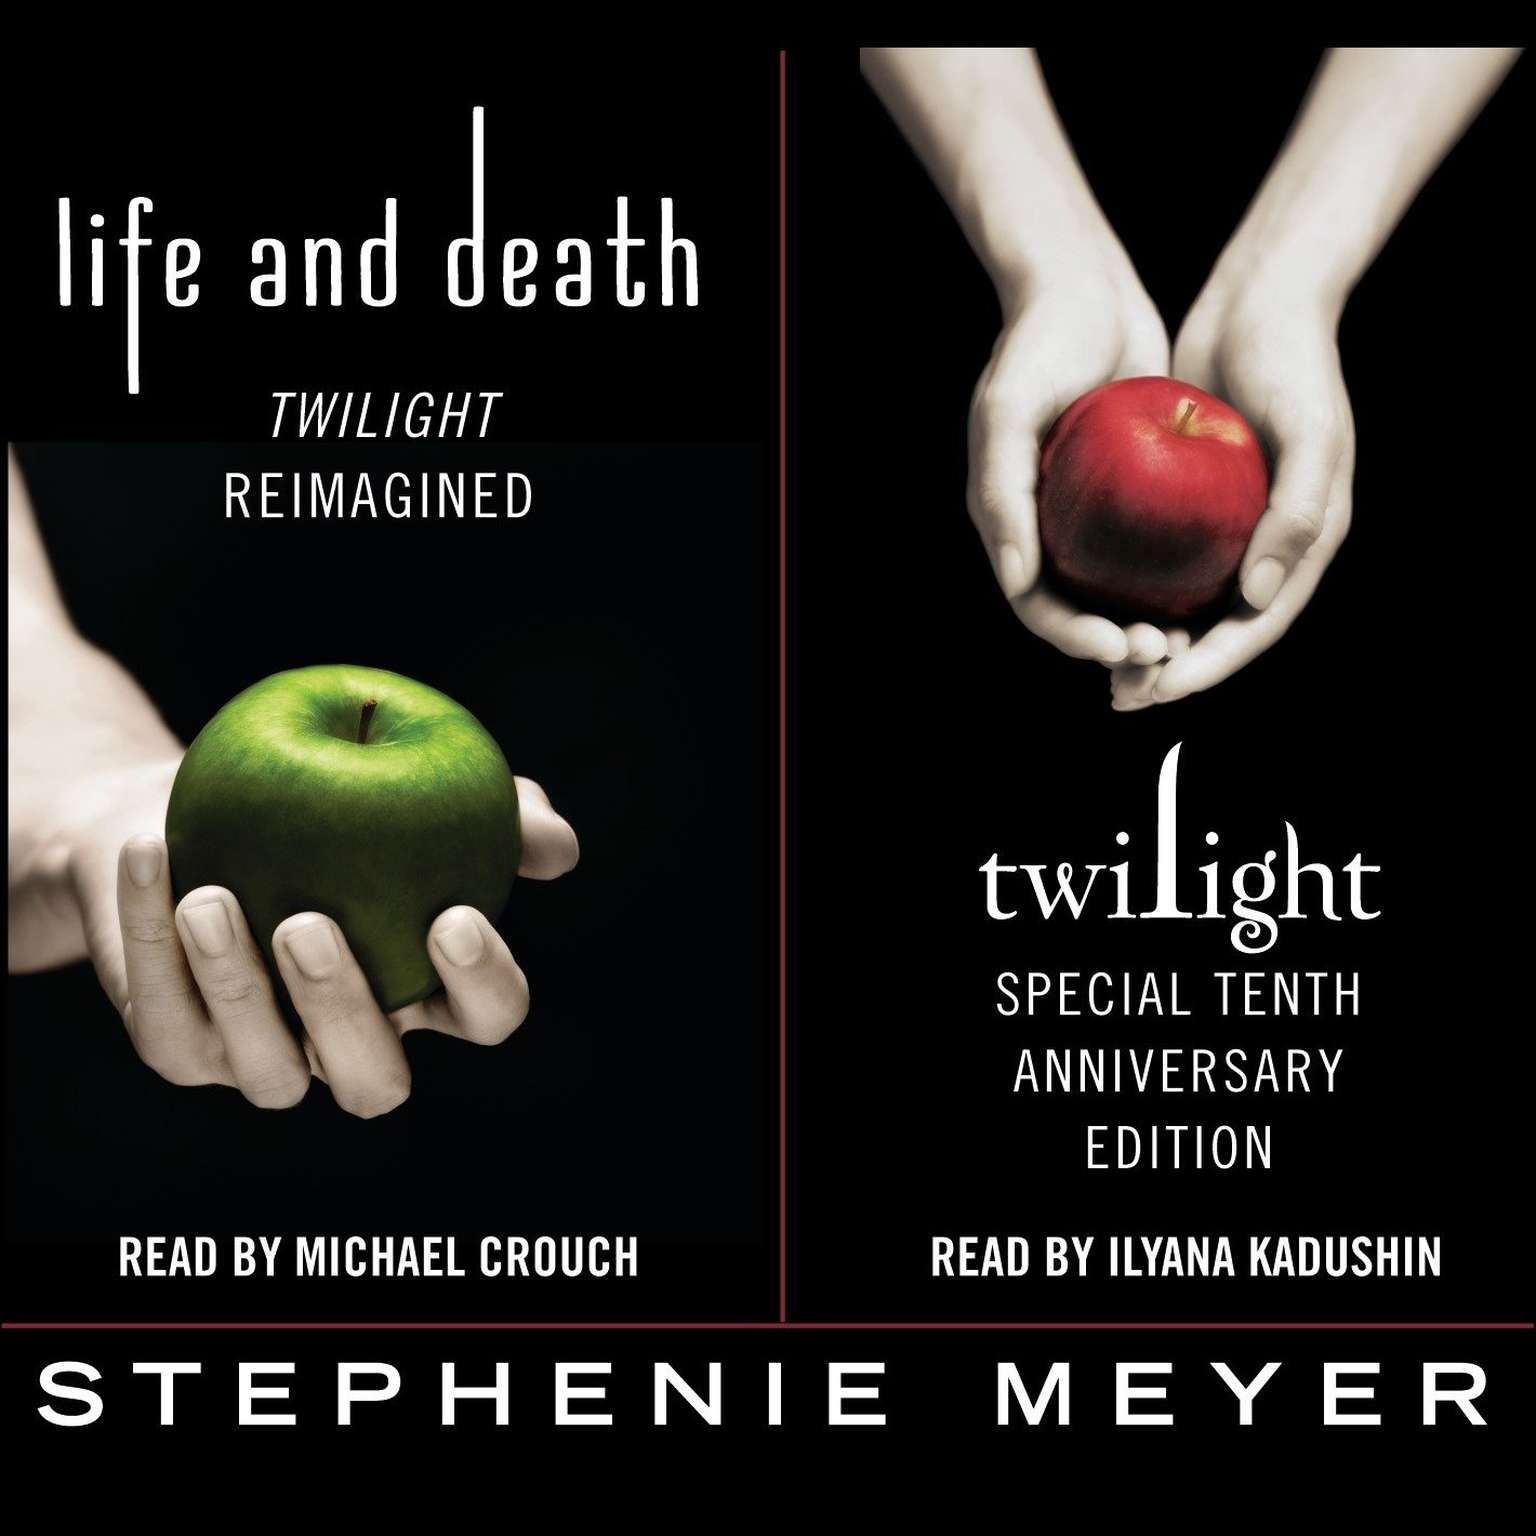 Printable Twilight Tenth Anniversary/Life and Death Dual Edition Audiobook Cover Art